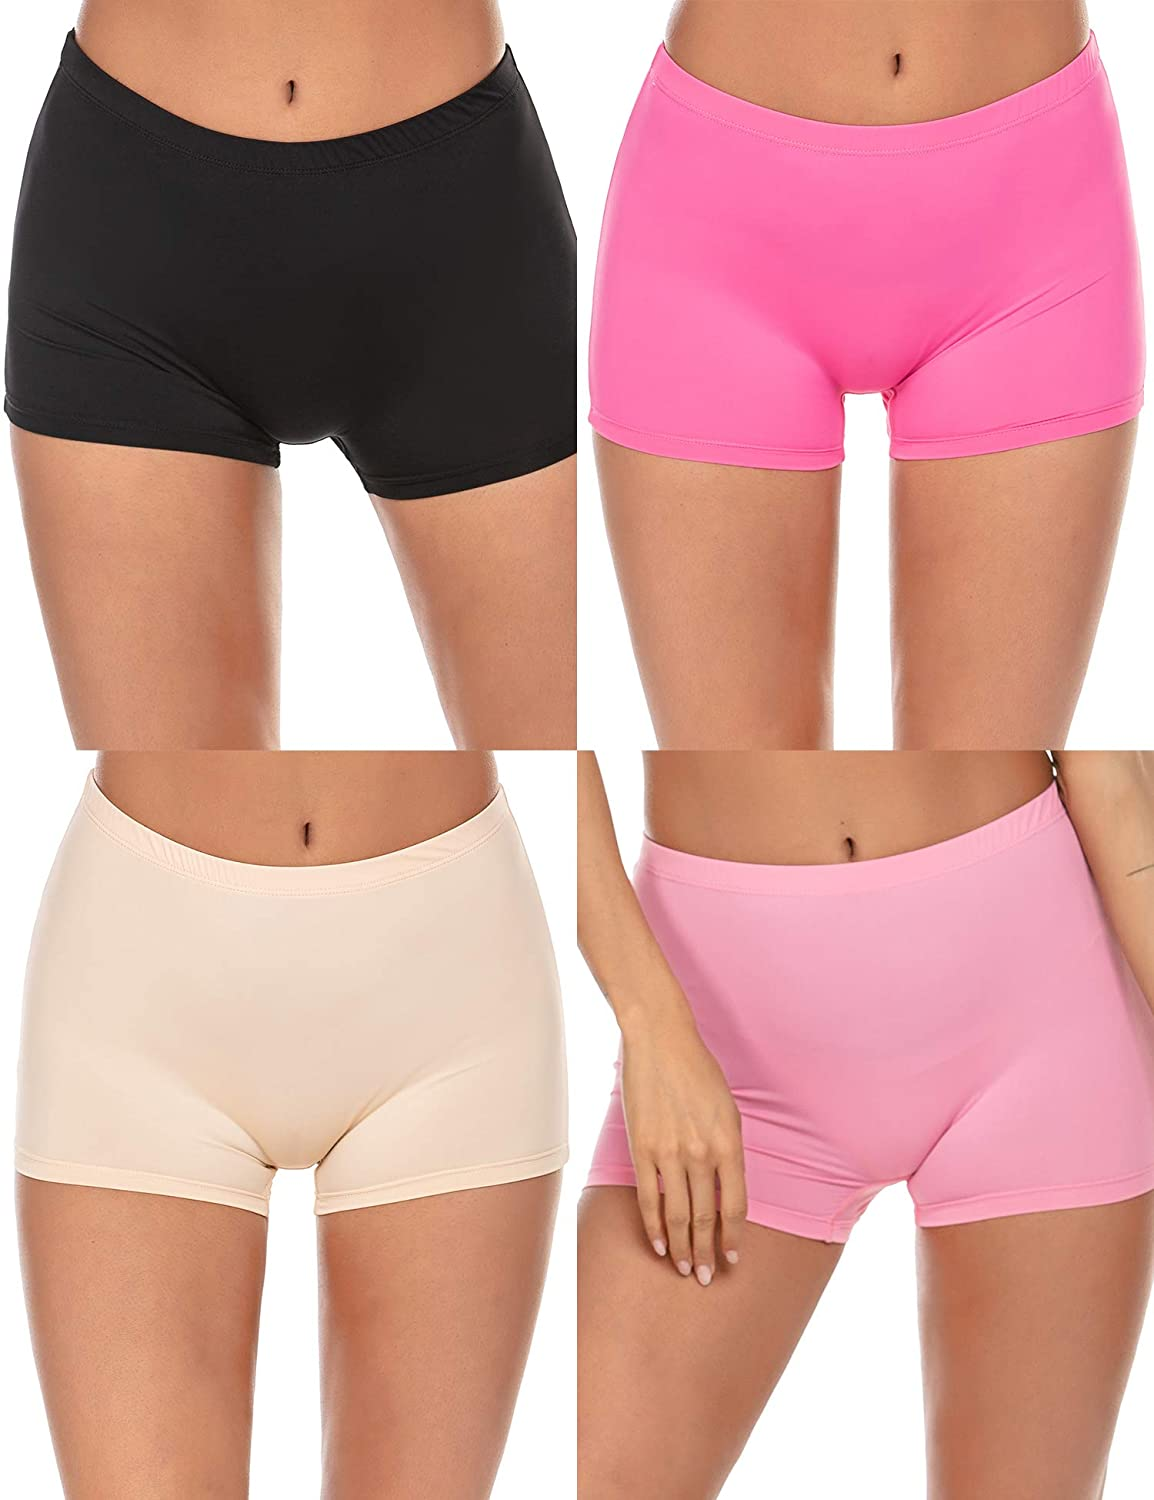 Ekouaer Boyshort Panties Womens Soft Underwear Briefs Invisible Hipster 3 Pack Or 4 Pack Seamless Boxer Brief Panties S-XXL